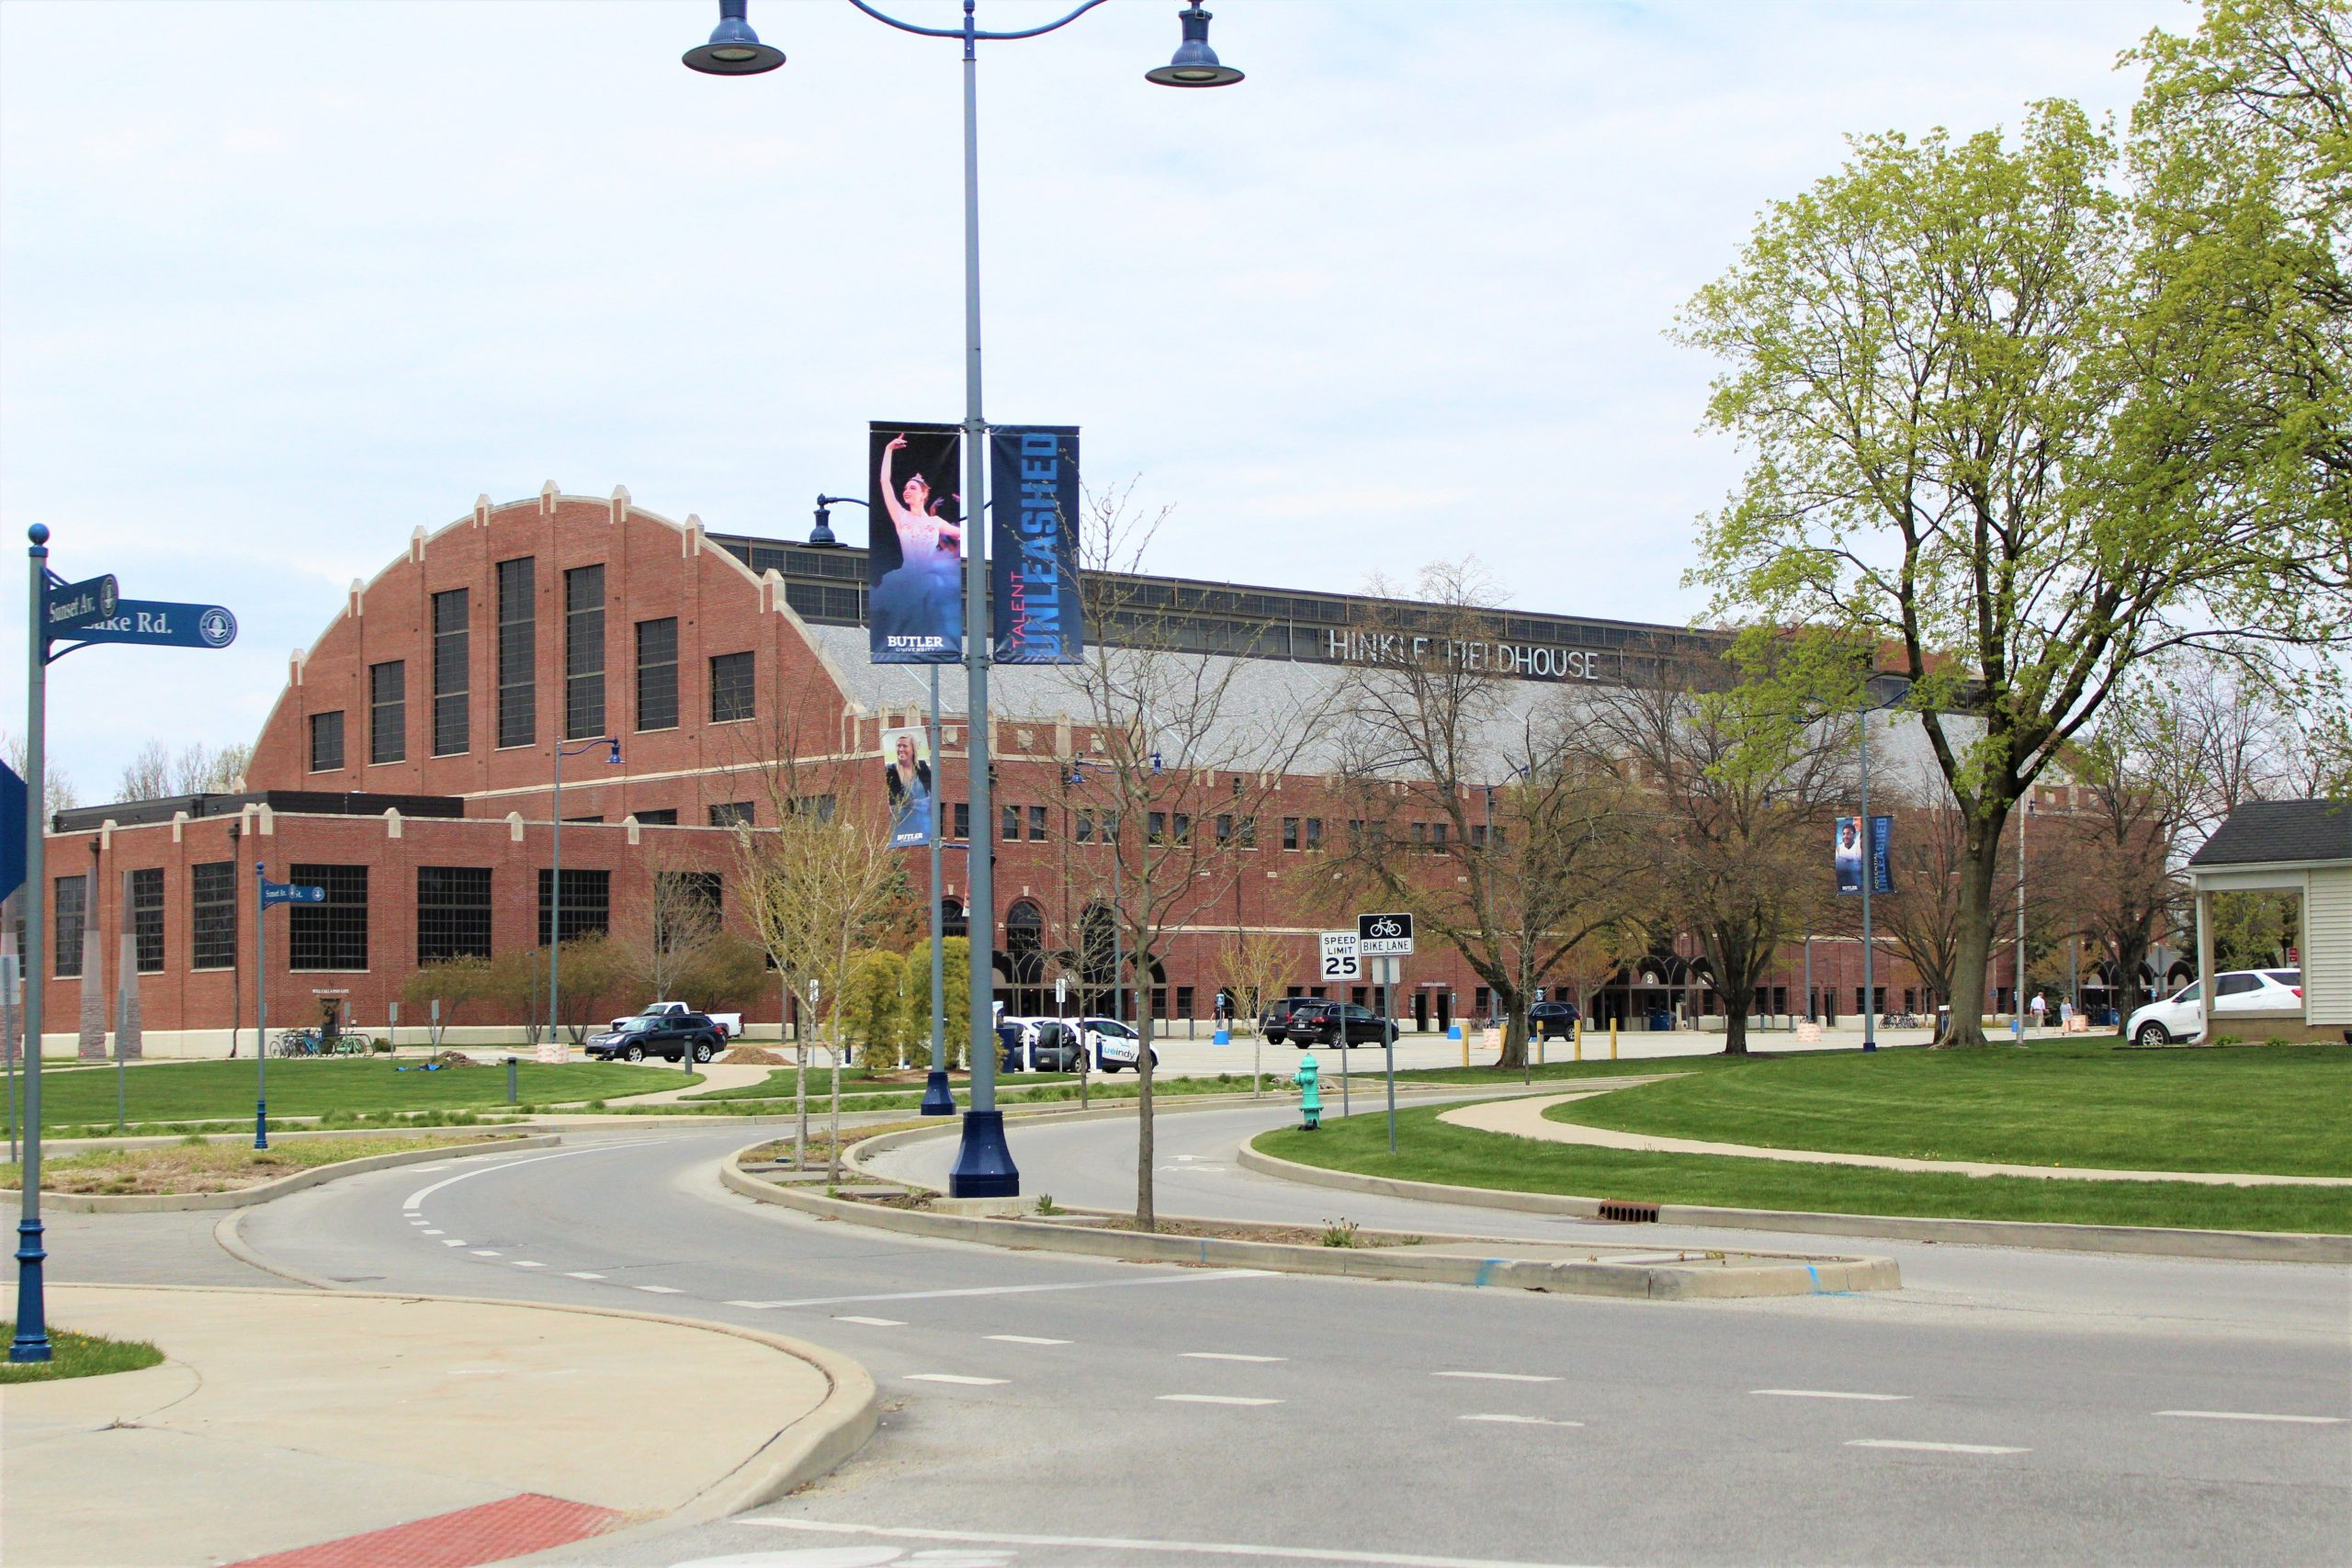 Butler-Tarkington - Hinkle Fieldhouse